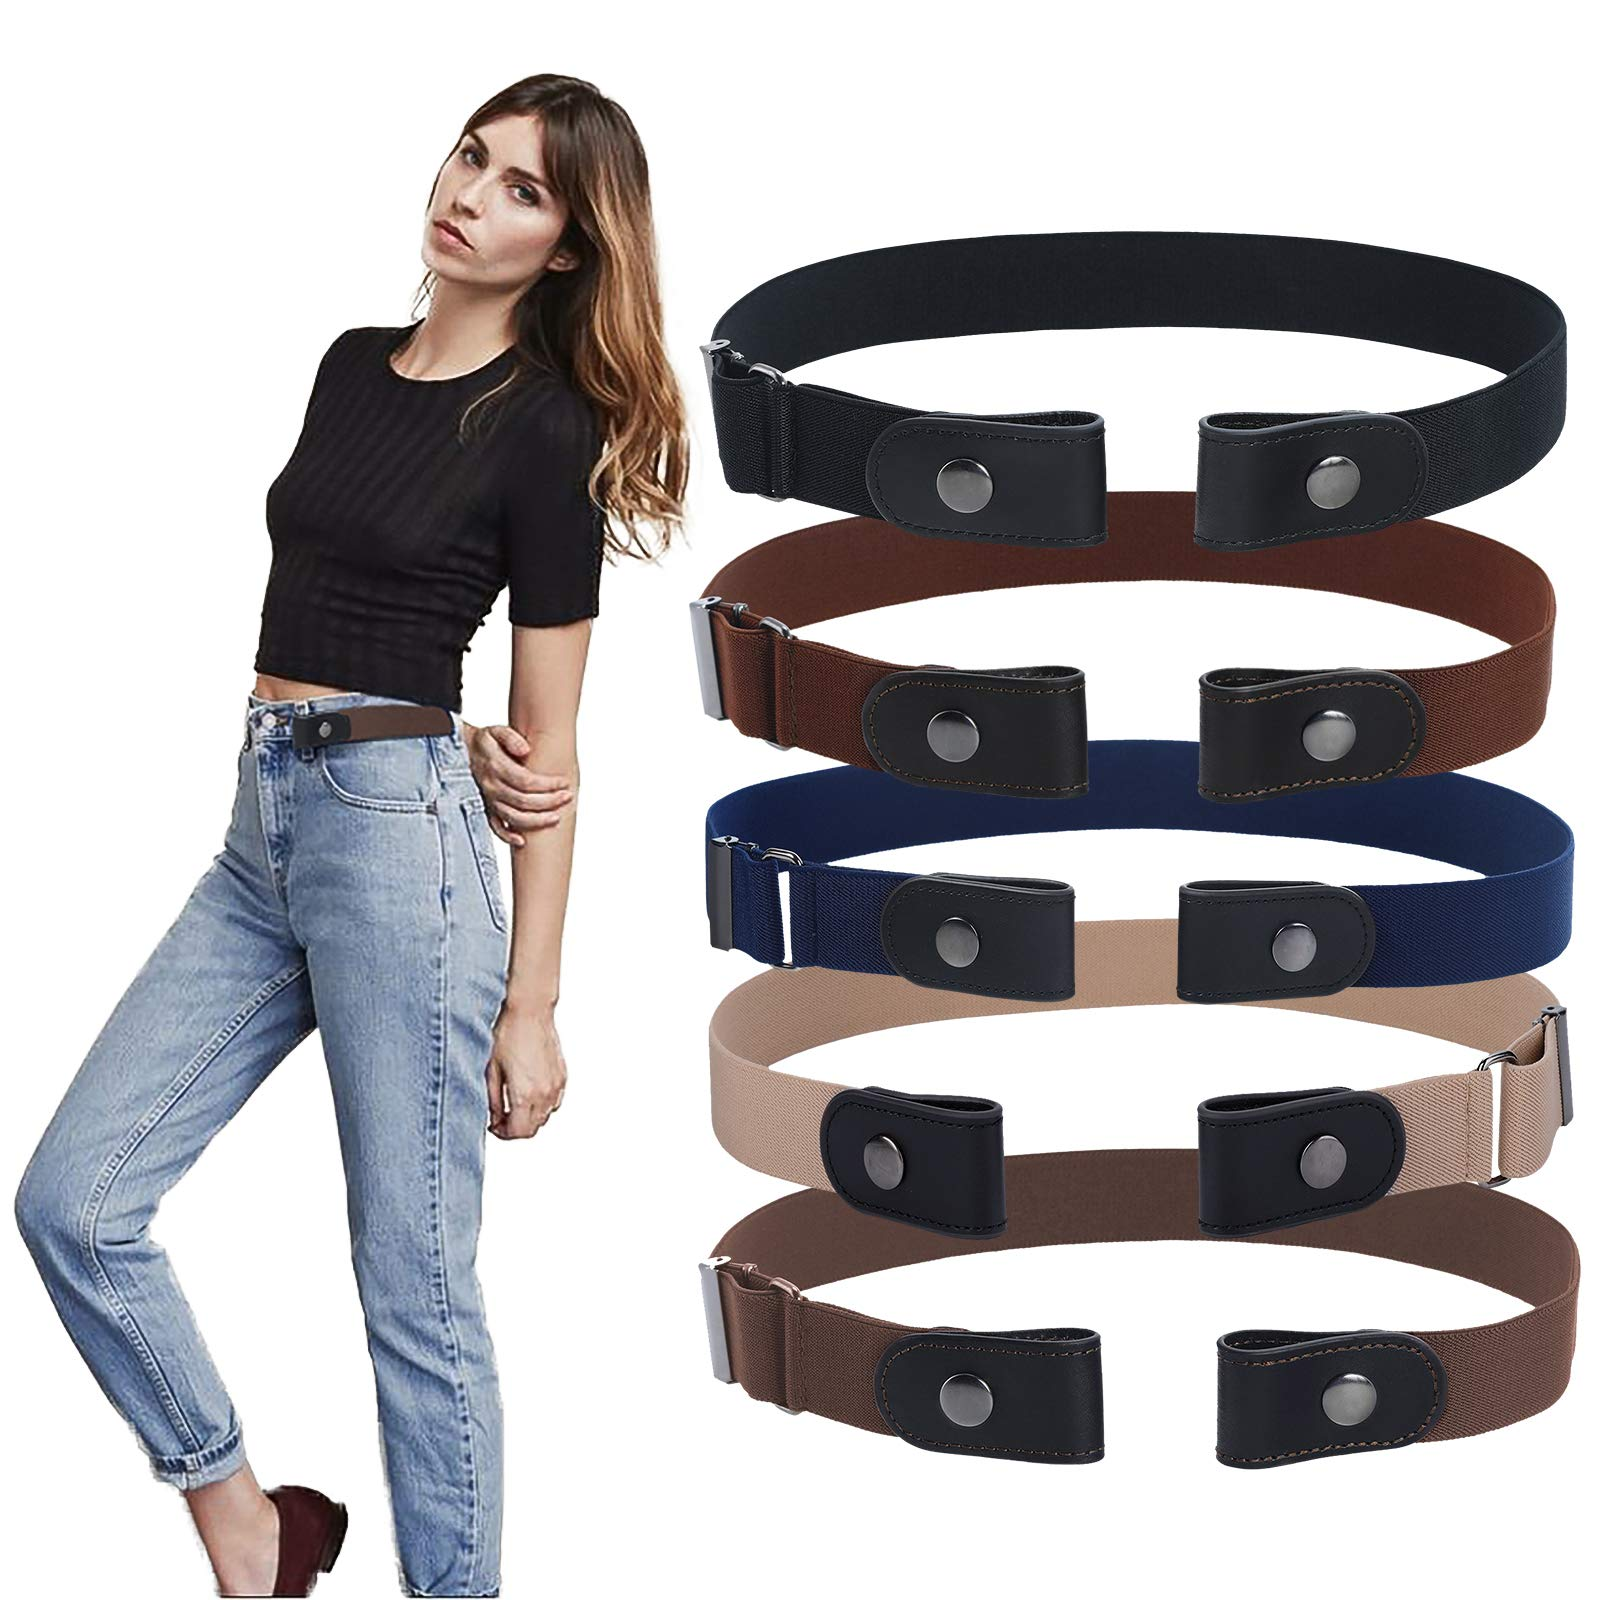 WELROG No Buckle Stretch Belt for Women and Men, Elastic Waist Belt for Jeans Pants Girls